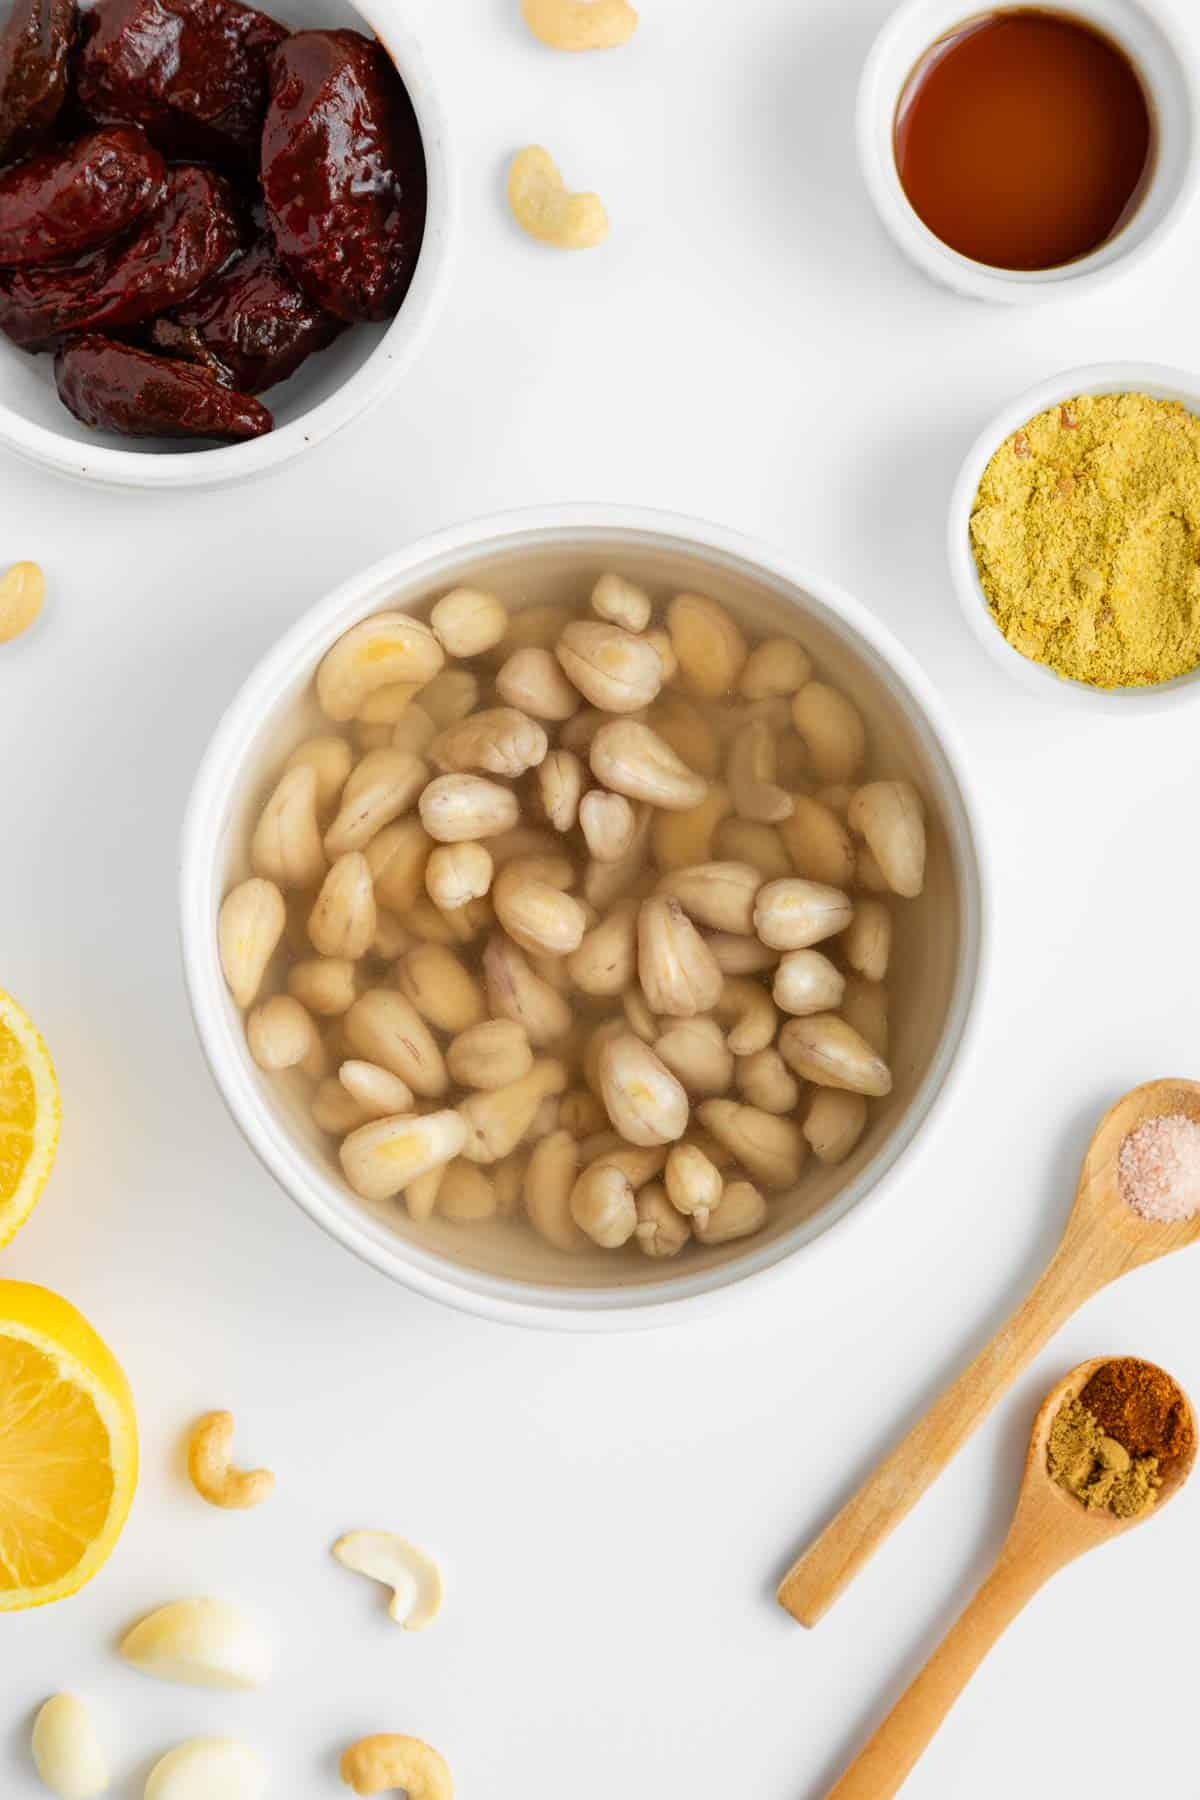 raw cashews soaking in water inside a white bowl surrounded by ingredients for vegan chipotle aioli